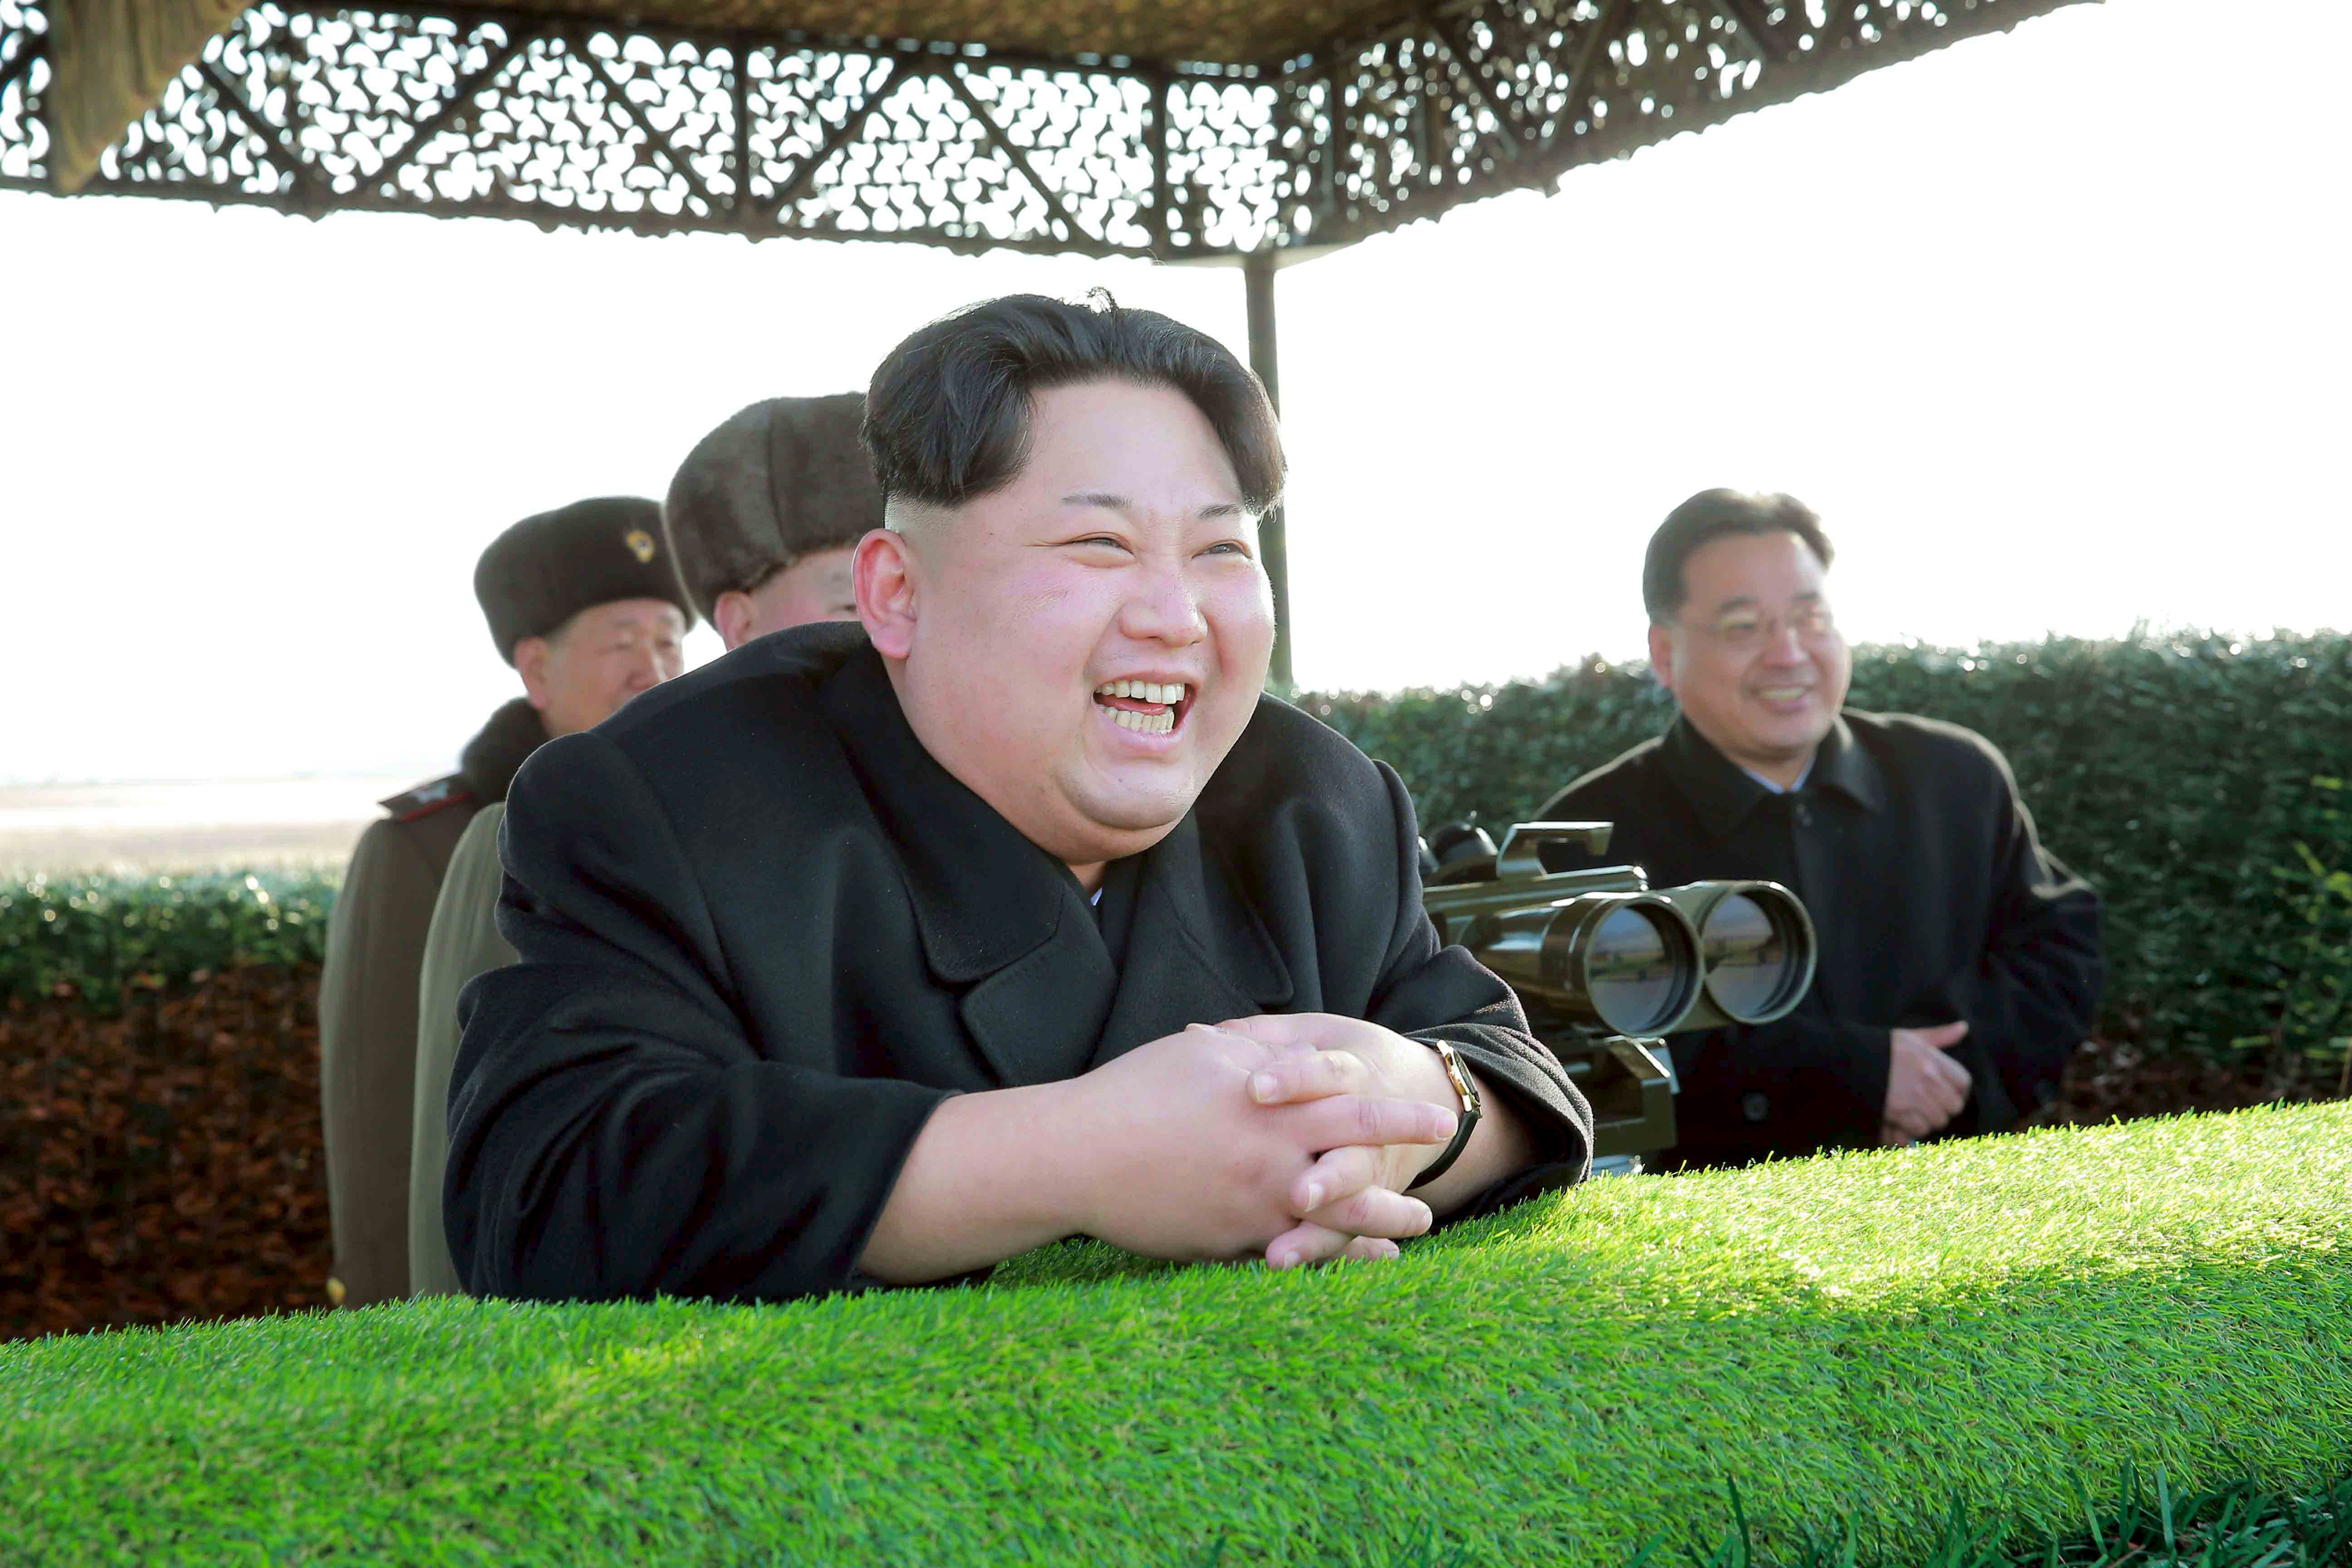 North Korean leader Kim Jong Un reacts during a test-fire of an anti-tank guided weapon in this undated photo released by North Korea's Korean Central News Agency (KCNA) in Pyongyang February 27, 2015.